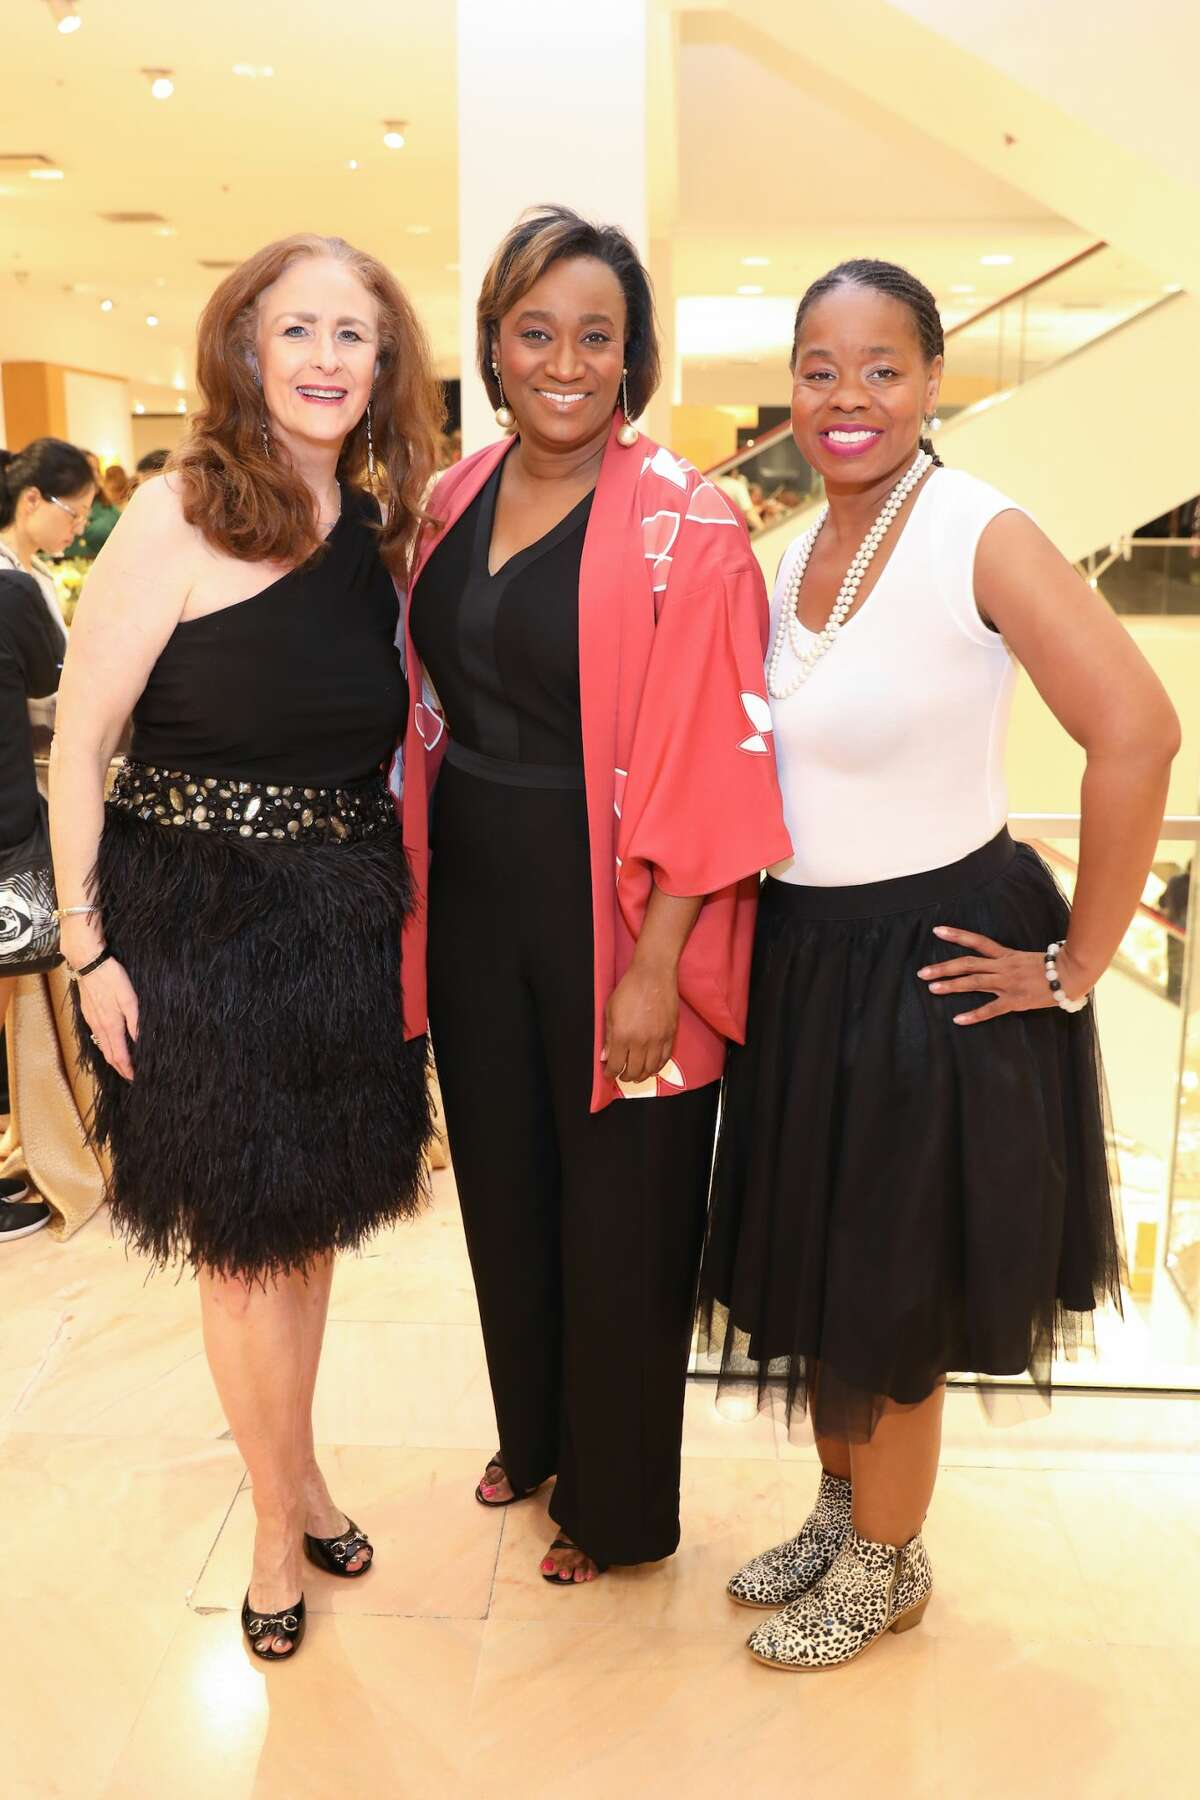 Neiman Marcus Galleria's 50th anniversary celebration on Oct. 16, 2019.